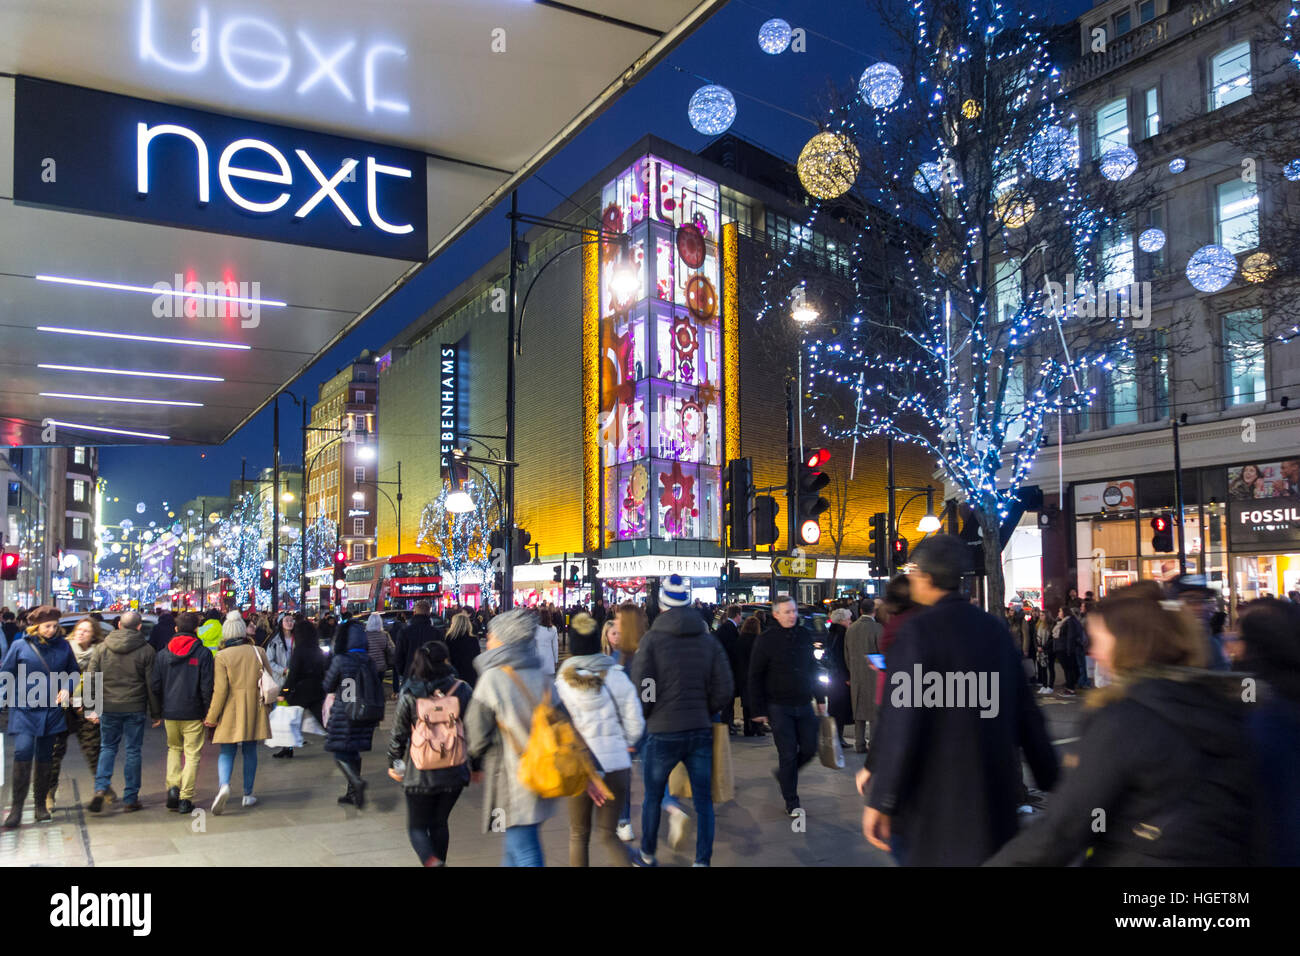 Christmas decorations on Oxford Street - Stock Image